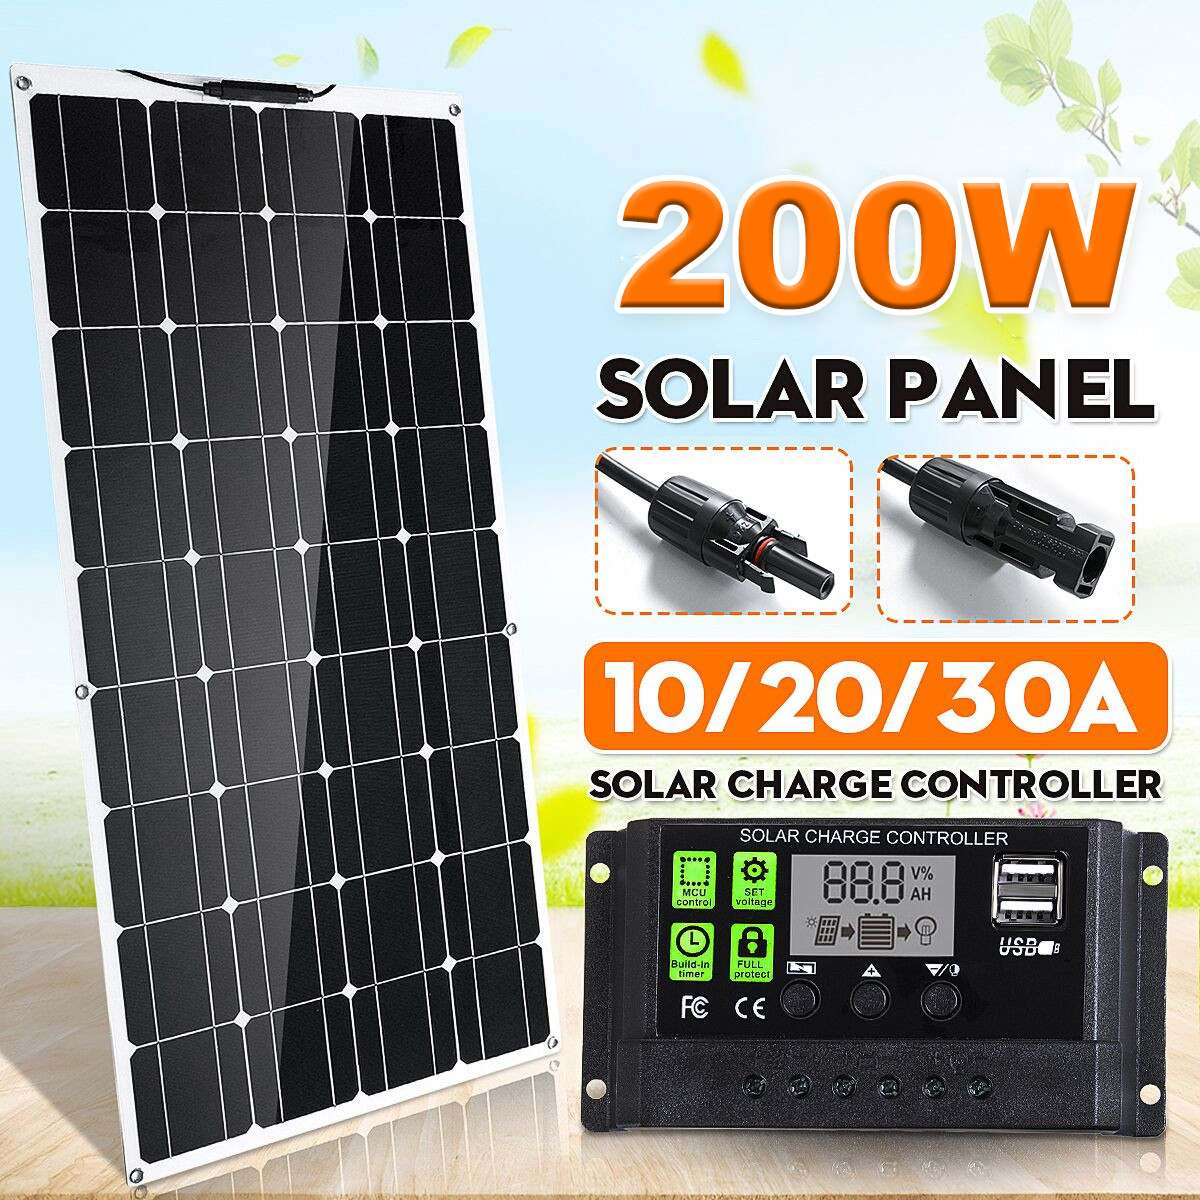 <font><b>200W</b></font> <font><b>Solar</b></font> <font><b>Panel</b></font> Dual USB Output Flexible MonoCrystalline Silicon <font><b>Solar</b></font> <font><b>Panel</b></font> 10/20/30A Controller for Car Yacht Battery Charger image